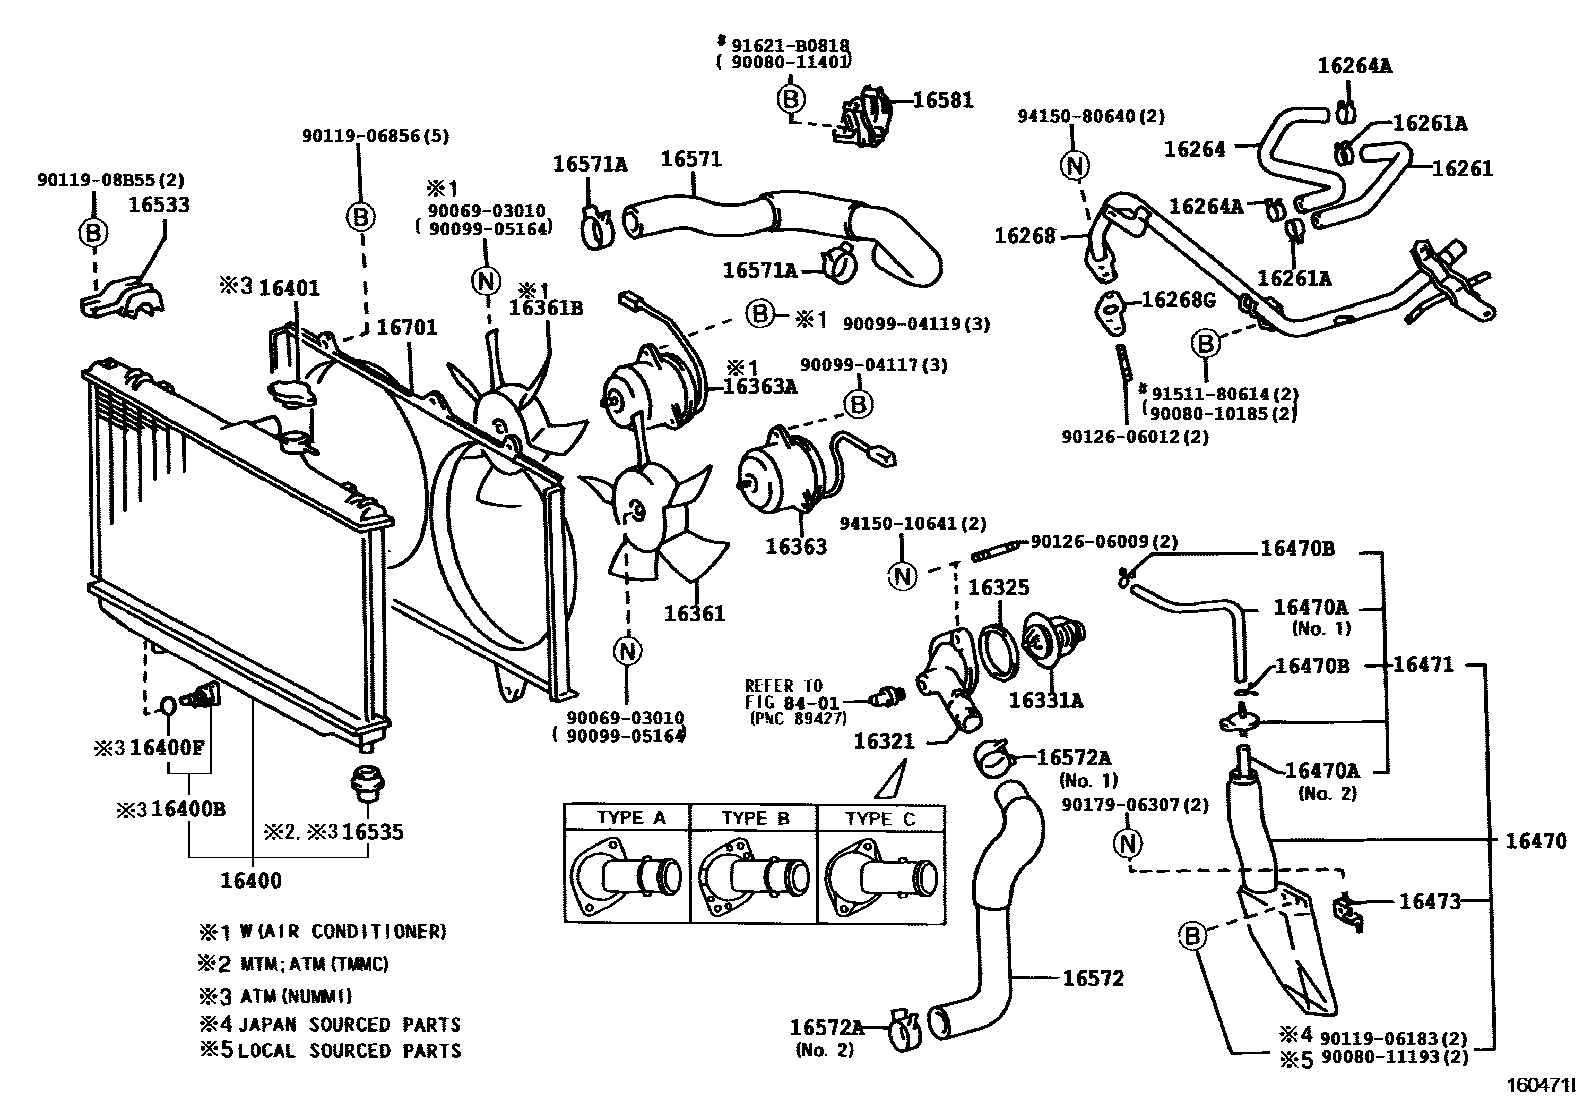 5915ffa00c3a9993e8074a28b87454dd corolla diy 1998 toyota corolla ve 1zzfe zze110 radiator and w 1998 corolla wiring diagram at webbmarketing.co